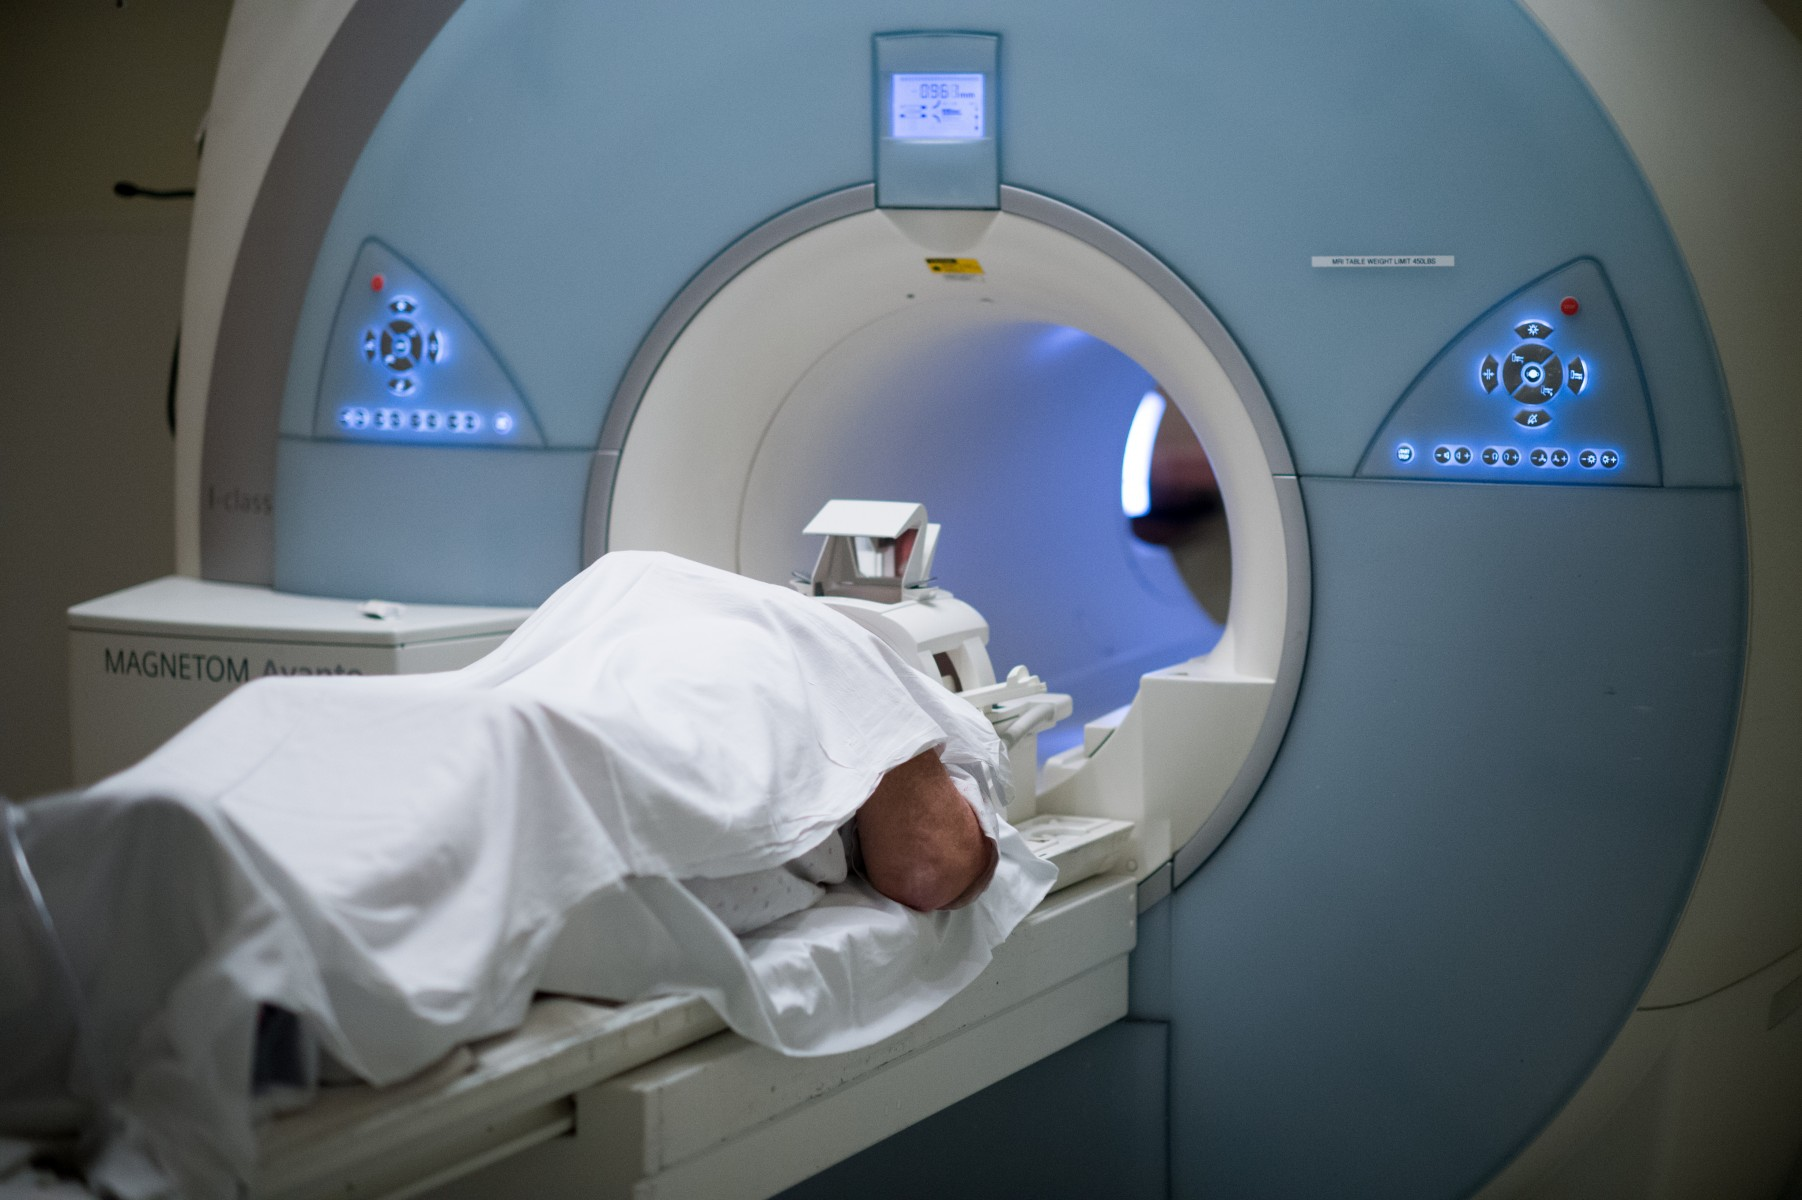 Magnetic Resonance Imaging. Courtesy of the National Institutes of Health.